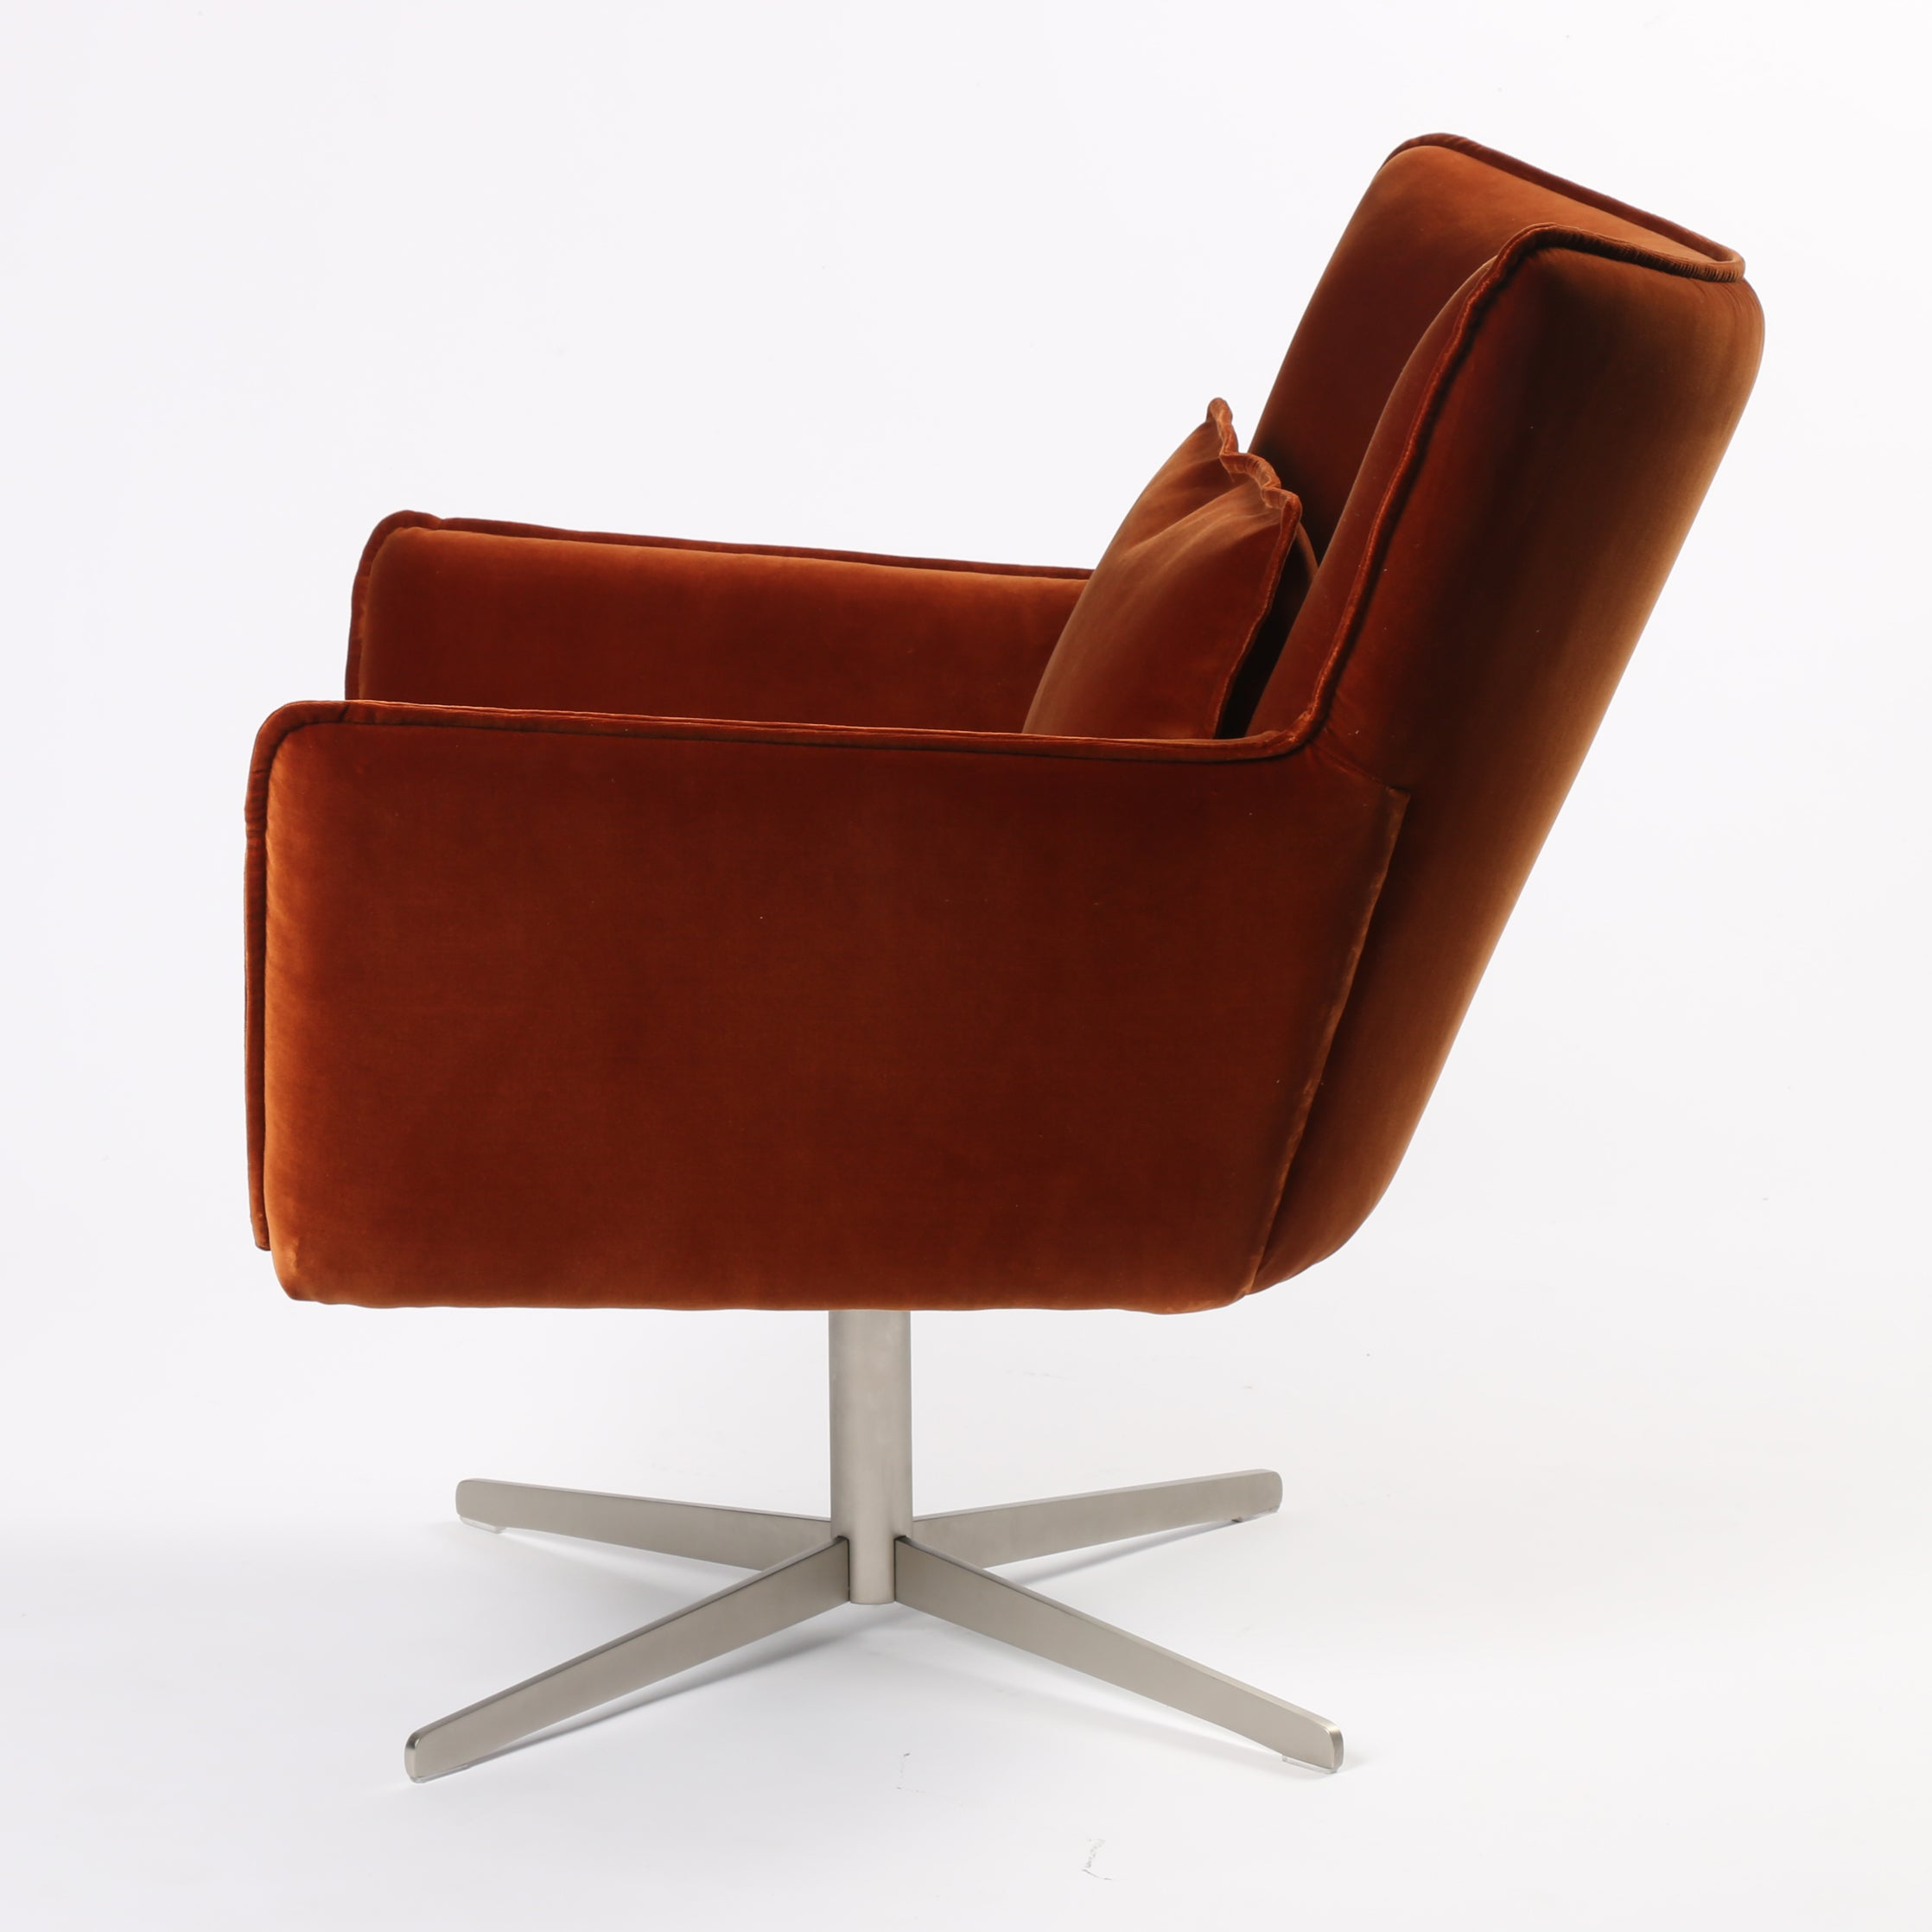 Groovy Four Hands Jacob Swivel Chair Hutch Modern Vintage And Evergreenethics Interior Chair Design Evergreenethicsorg